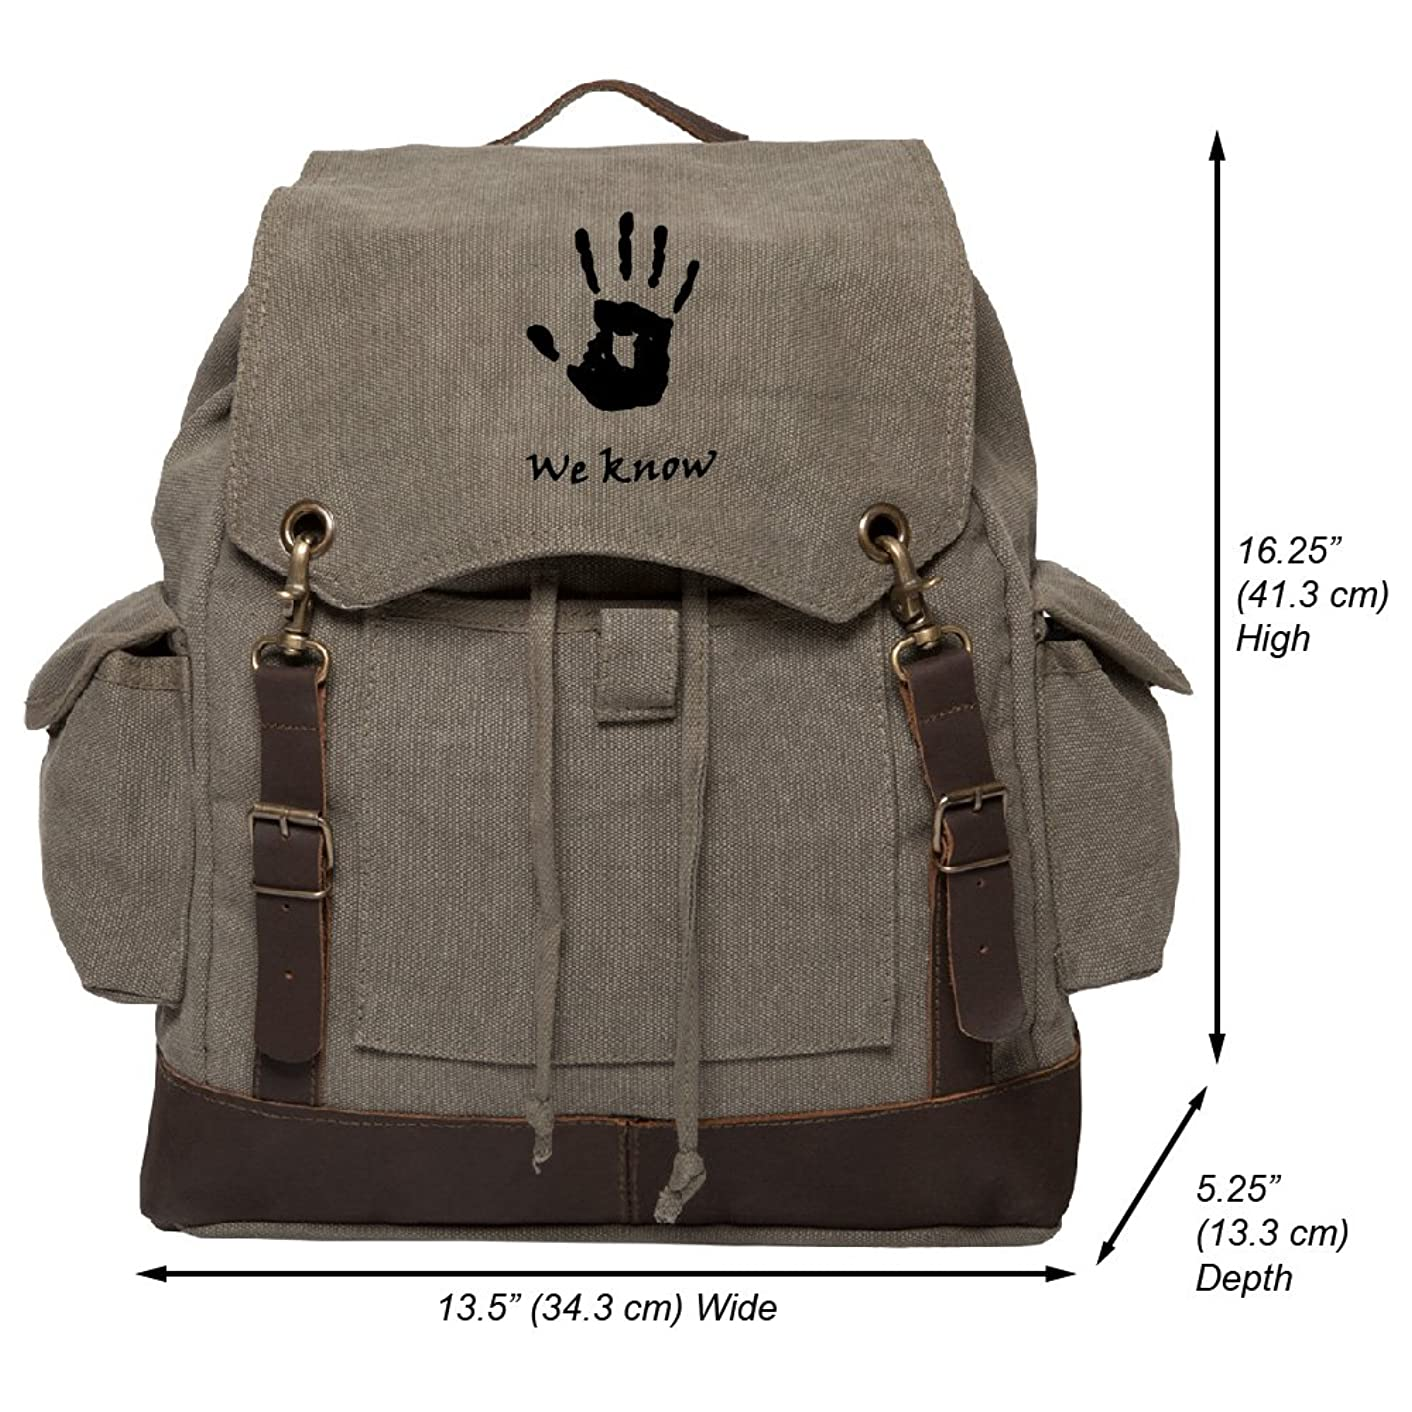 Skyrim We Know WHITE Vinyl Vintage Canvas Rucksack Backpack with Leather Straps